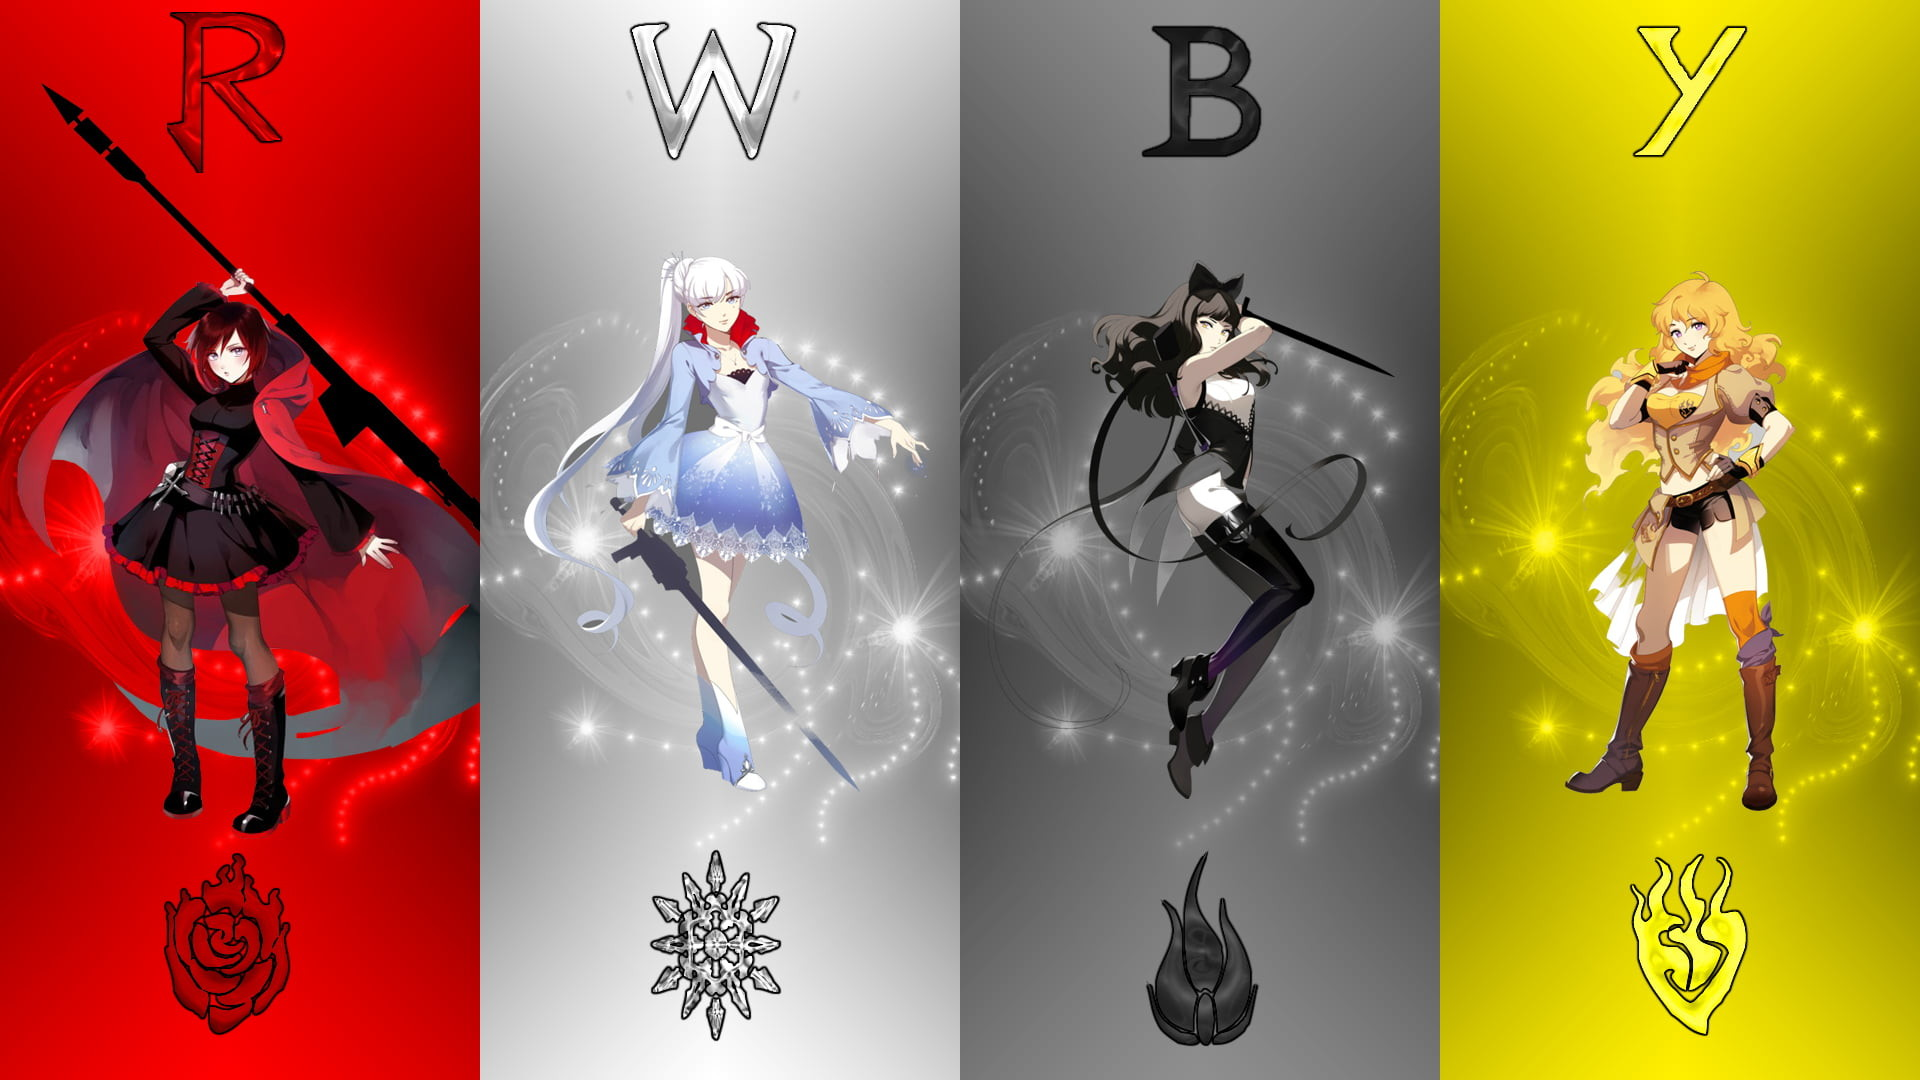 Res: 1920x1080, RWBY anime character digital wallpaper HD wallpaper